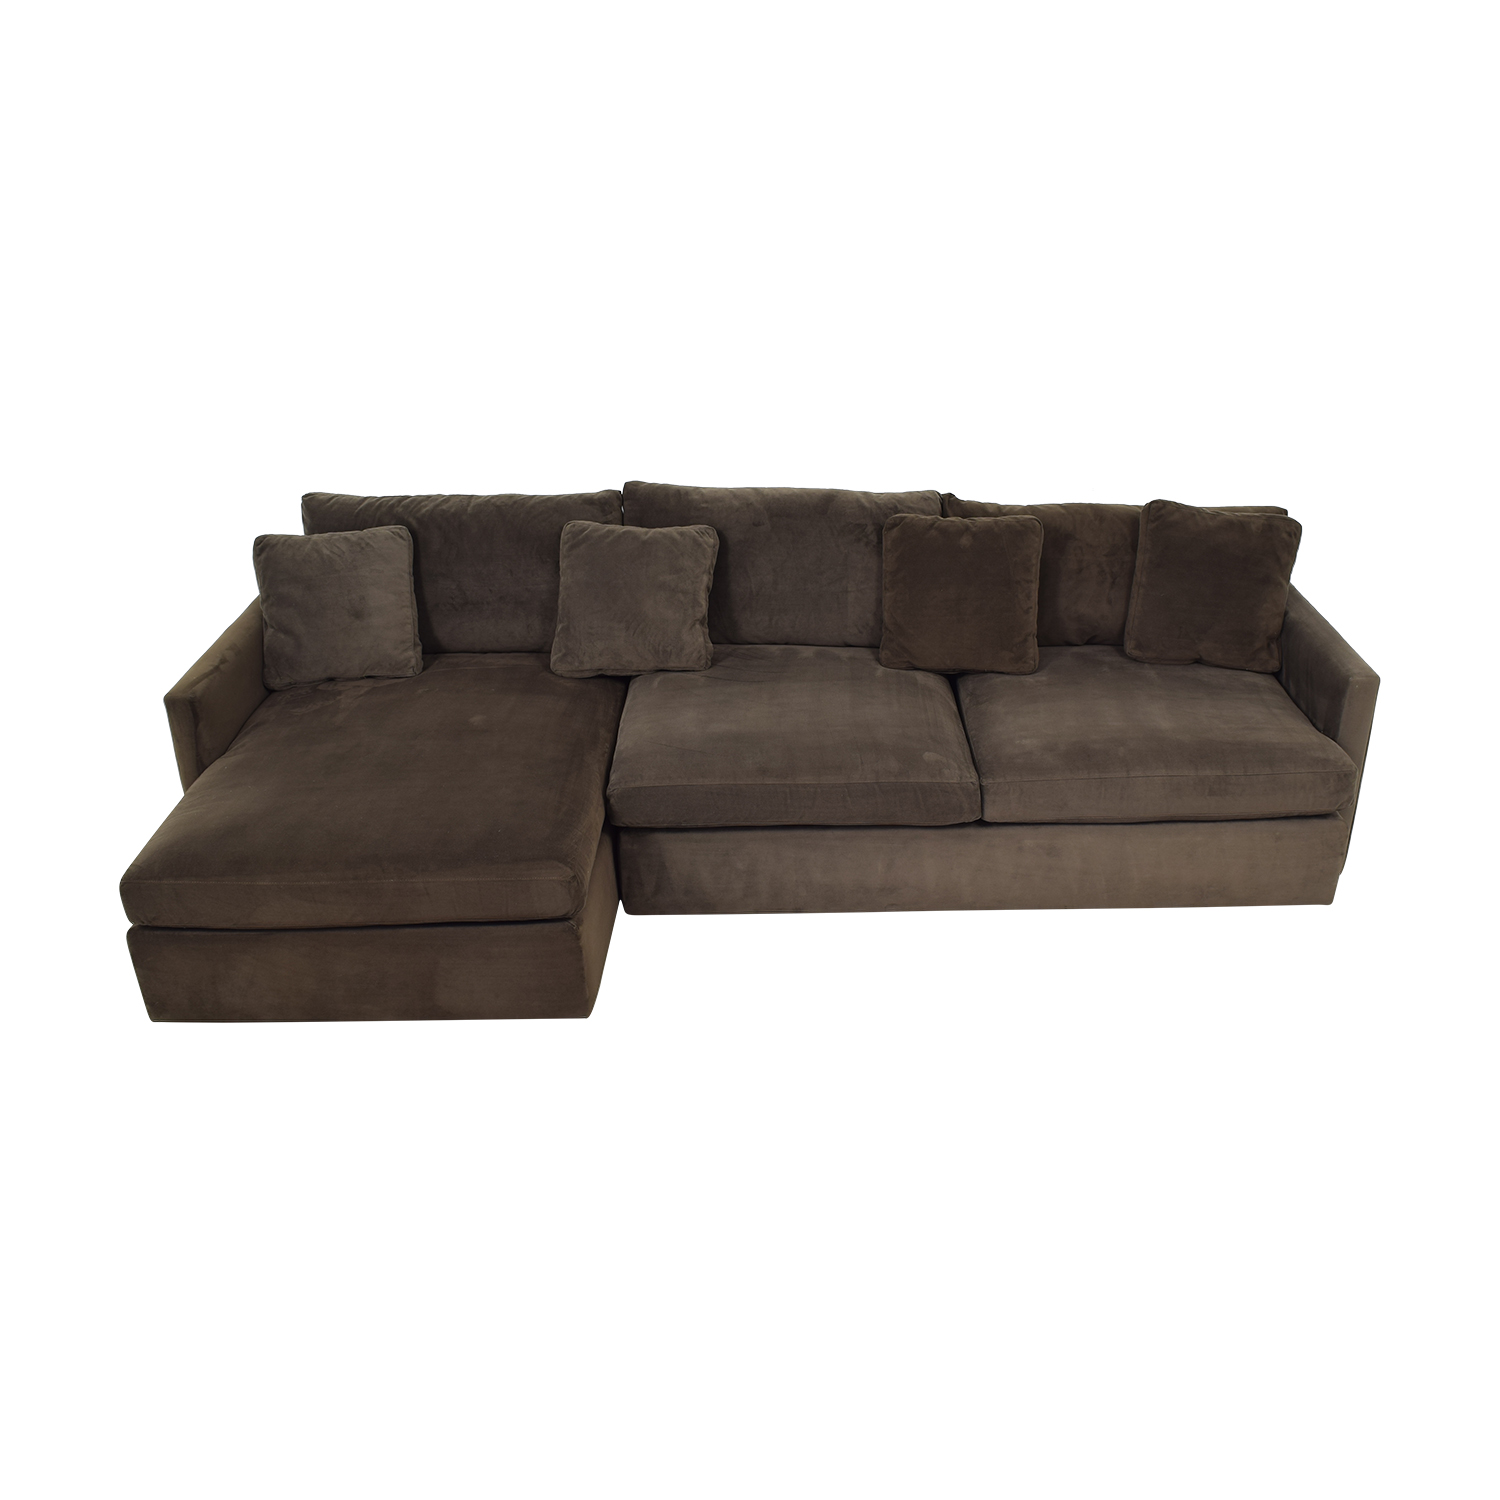 Crate & Barrel Crate & Barrel Brown Chaise Sectional for sale